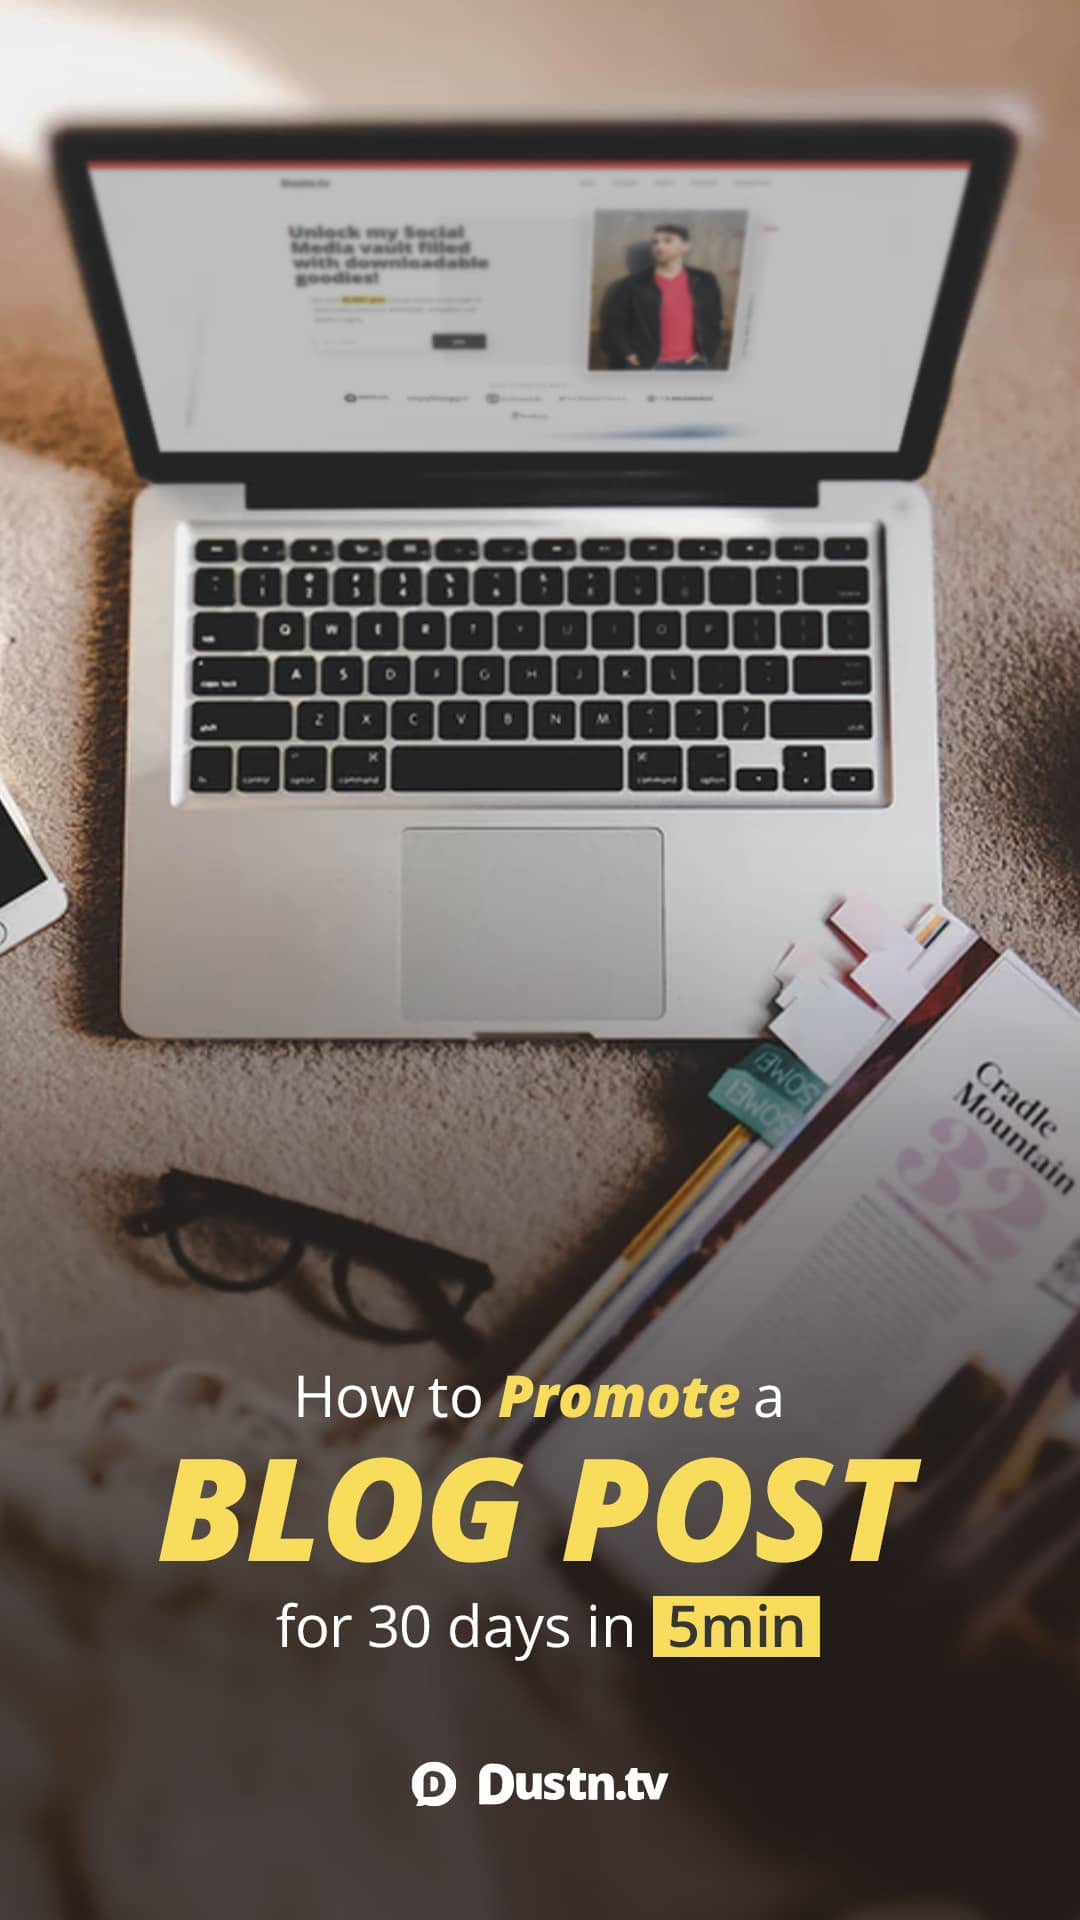 It can be a daunting task to promote your latest blog post across all your social media networks. With this easy to use template, you can do it in 5 minutes or less.